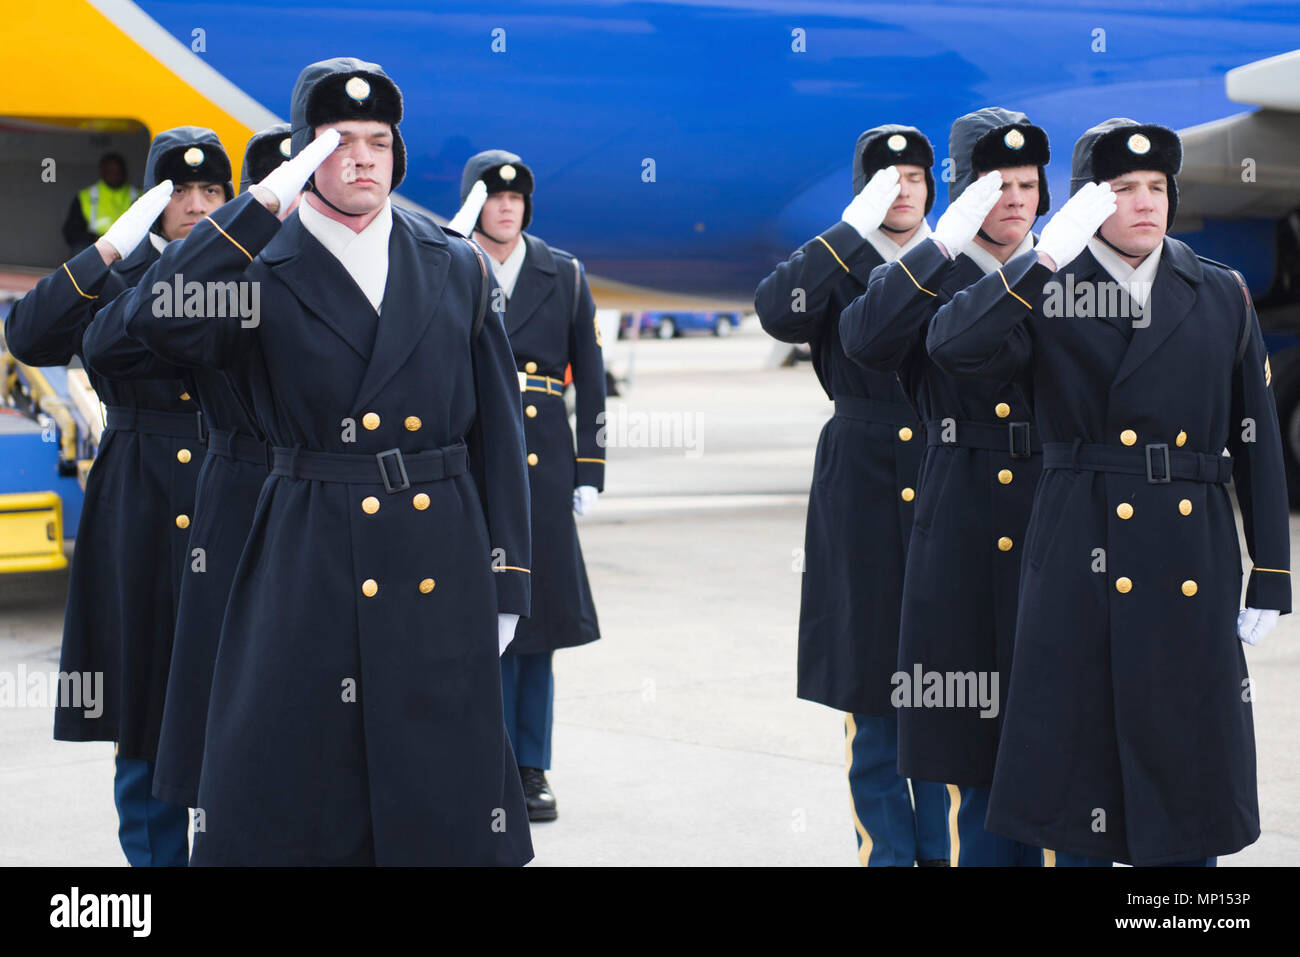 Soldiers assigned to the 3d U.S. Infantry Regiment (The Old Guard), conduct a Plane Side Honors at Ronald Reagan Washington National Airport in Arlington, Va., March 14, 2018. Honors were rendered for Sgt. 1st Class Ryan Kenner who perished while serving on Active Duty. - Stock Image